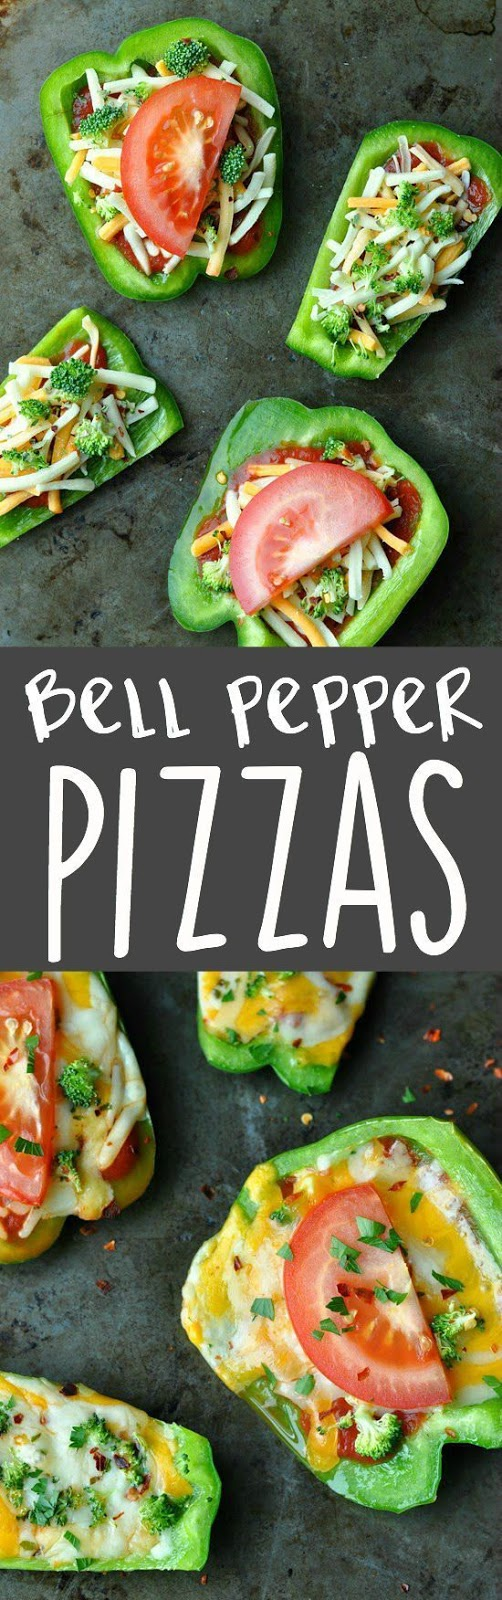 BELL PEPPER PIZZAS #BELL #PEPPER #PIZZAS    #DESSERTS #HEALTHYFOOD #EASY_RECIPES #DINNER #LAUCH #DELICIOUS #EASY #HOLIDAYS #RECIPE #SPECIAL_DIET #WORLD_CUISINE #CAKE #GRILL #APPETIZERS #HEALTHY_RECIPES #DRINKS #COOKING_METHOD #ITALIAN_RECIPES #MEAT #VEGAN_RECIPES #COOKIES #PASTA #FRUIT #SALAD #SOUP_APPETIZERS #NON_ALCOHOLIC_DRINKS #MEAL_PLANNING #VEGETABLES #SOUP #PASTRY #CHOCOLATE #DAIRY #ALCOHOLIC_DRINKS #BULGUR_SALAD #BAKING #SNACKS #BEEF_RECIPES #MEAT_APPETIZERS #MEXICAN_RECIPES #BREAD #ASIAN_RECIPES #SEAFOOD_APPETIZERS #MUFFINS #BREAKFAST_AND_BRUNCH #CONDIMENTS #CUPCAKES #CHEESE #CHICKEN_RECIPES #PIE #COFFEE #NO_BAKE_DESSERTS #HEALTHY_SNACKS #SEAFOOD #GRAIN #LUNCHES_DINNERS #MEXICAN #QUICK_BREAD #LIQUOR